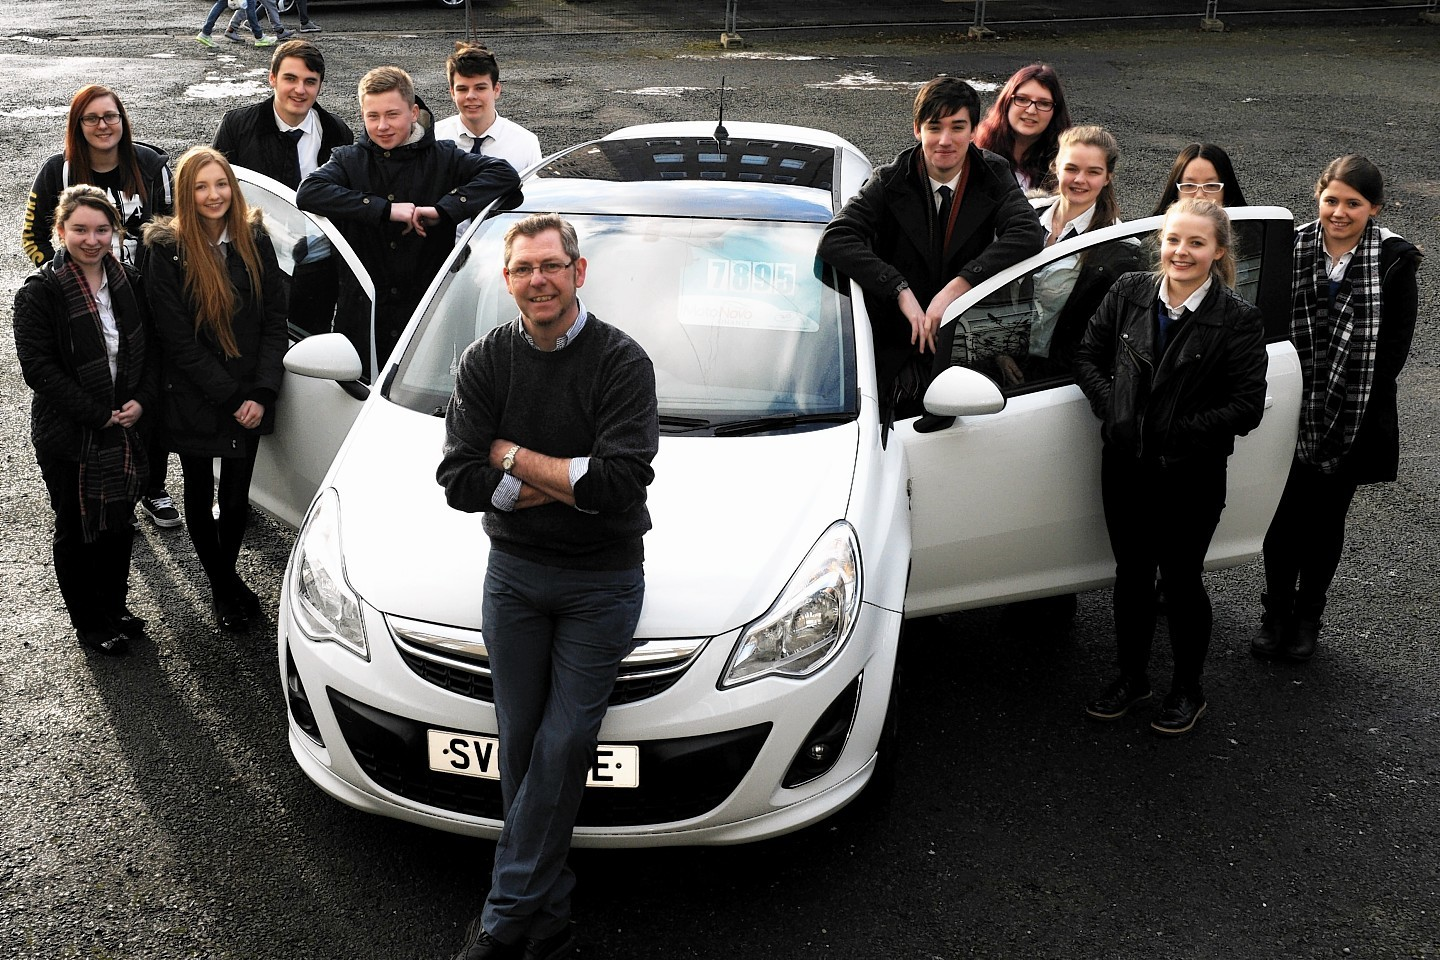 The DAB Plus Driver Training road safety event at Ellon Academy will continue today